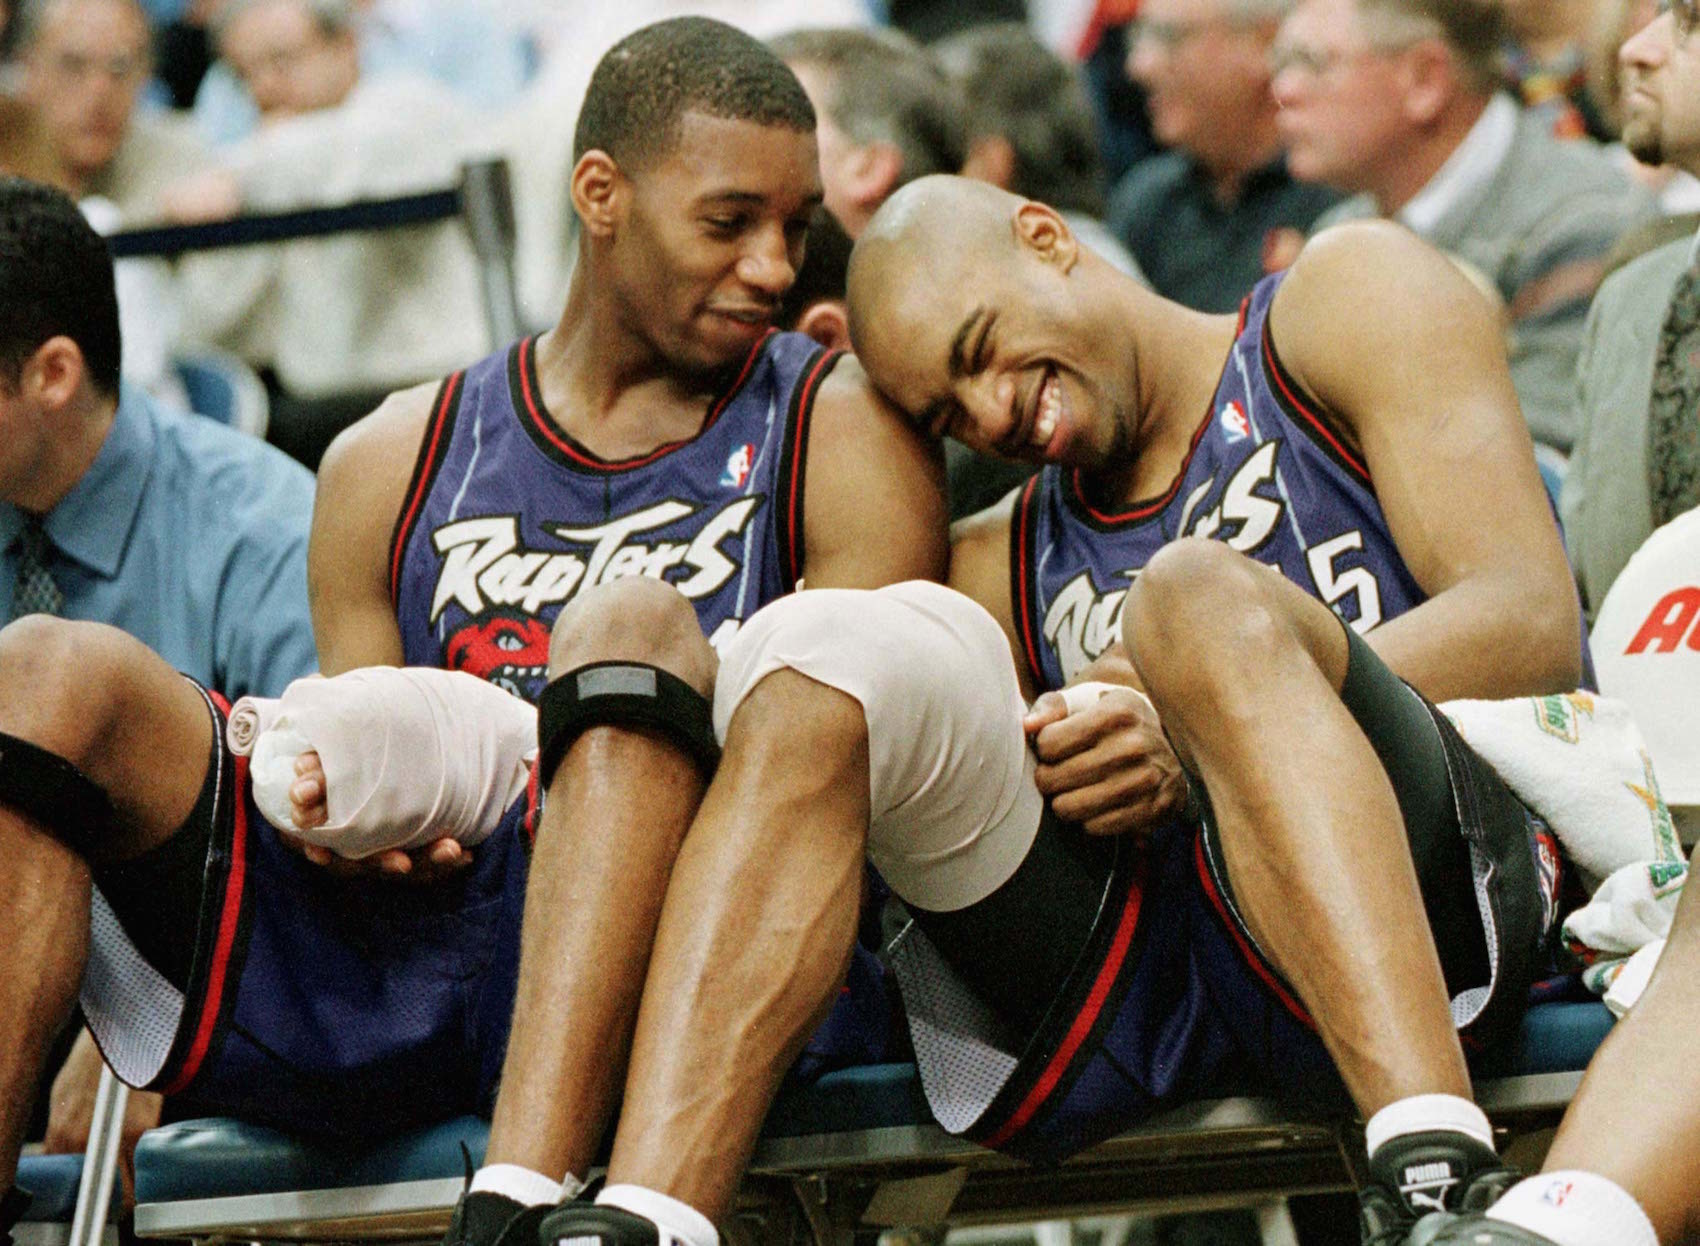 Vince Carter Should Be the First Raptor to Have His Number Retired